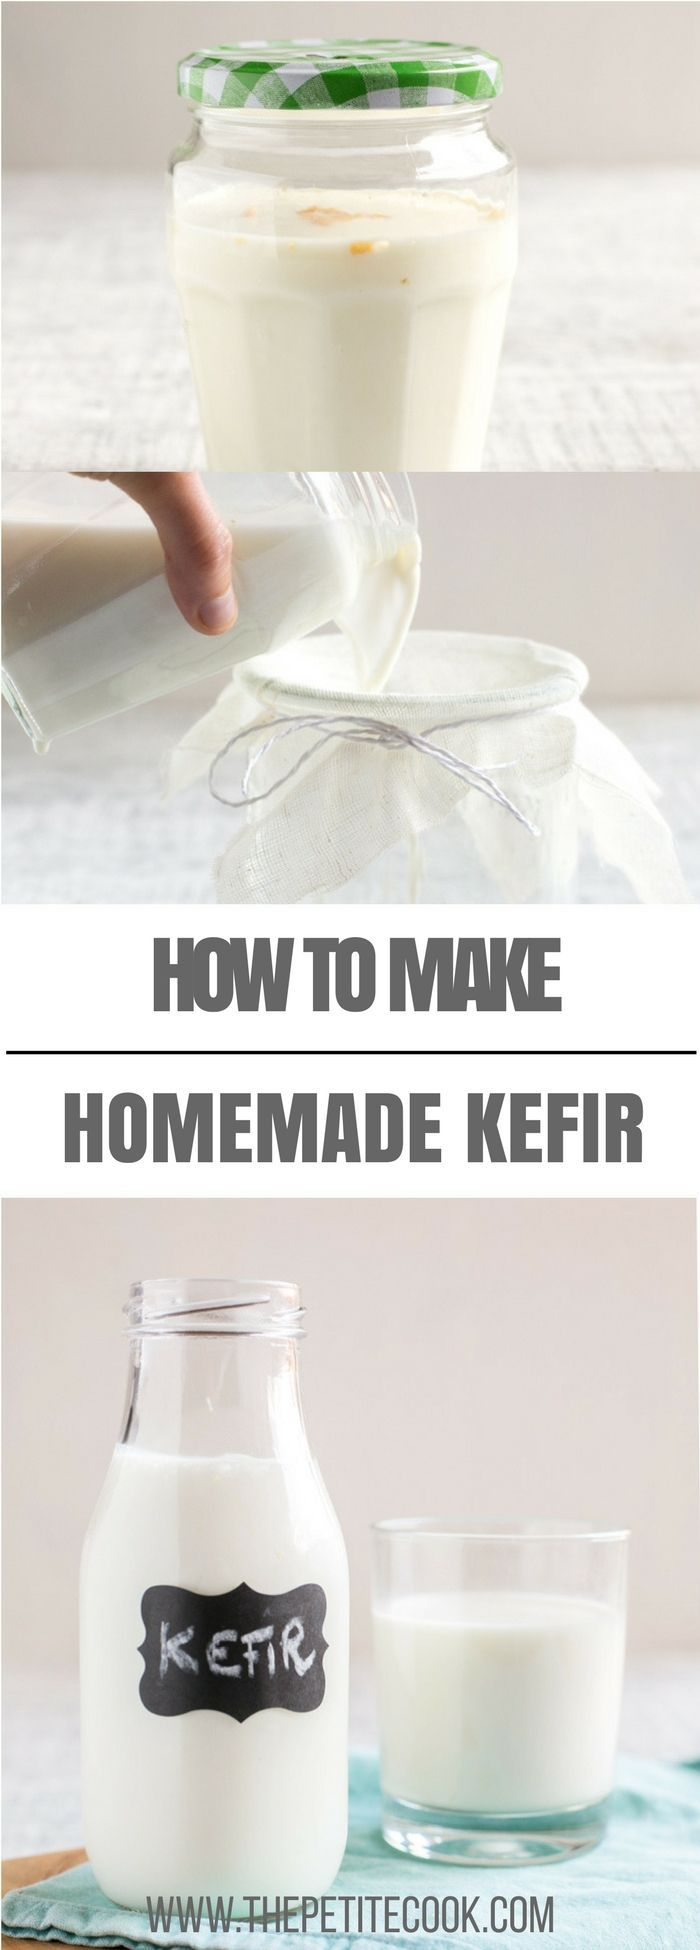 Homemade Milk Kefir is super easy to make and full of good-for-you probiotics. Drink kefir straight-up, added to smoothies, or use it in place of yogurt/buttermilk/milk when baking cakes, muffins or pancakes. Recipe by The Petite Cook